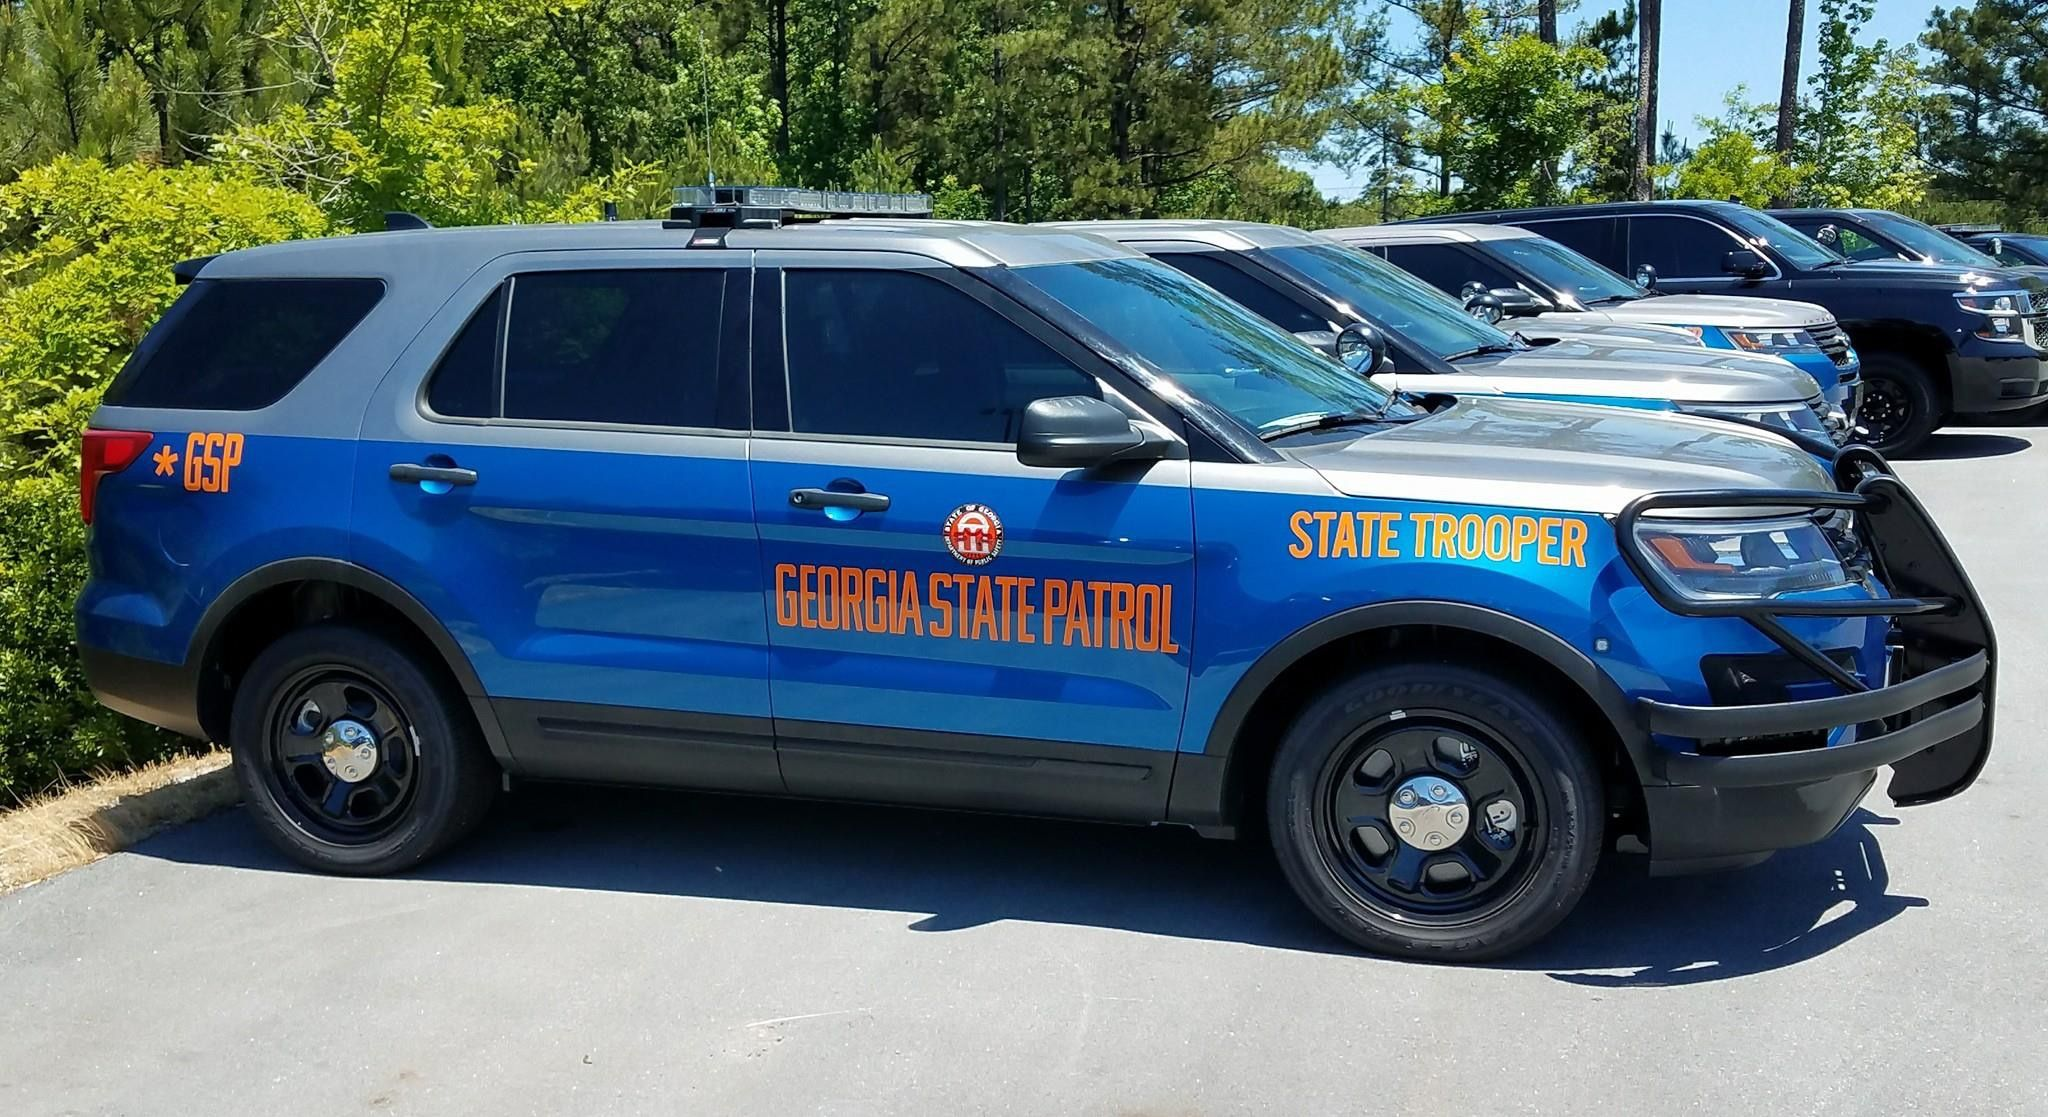 Pin By Cody Jo Olson On Georgia State Patrol Police Cars